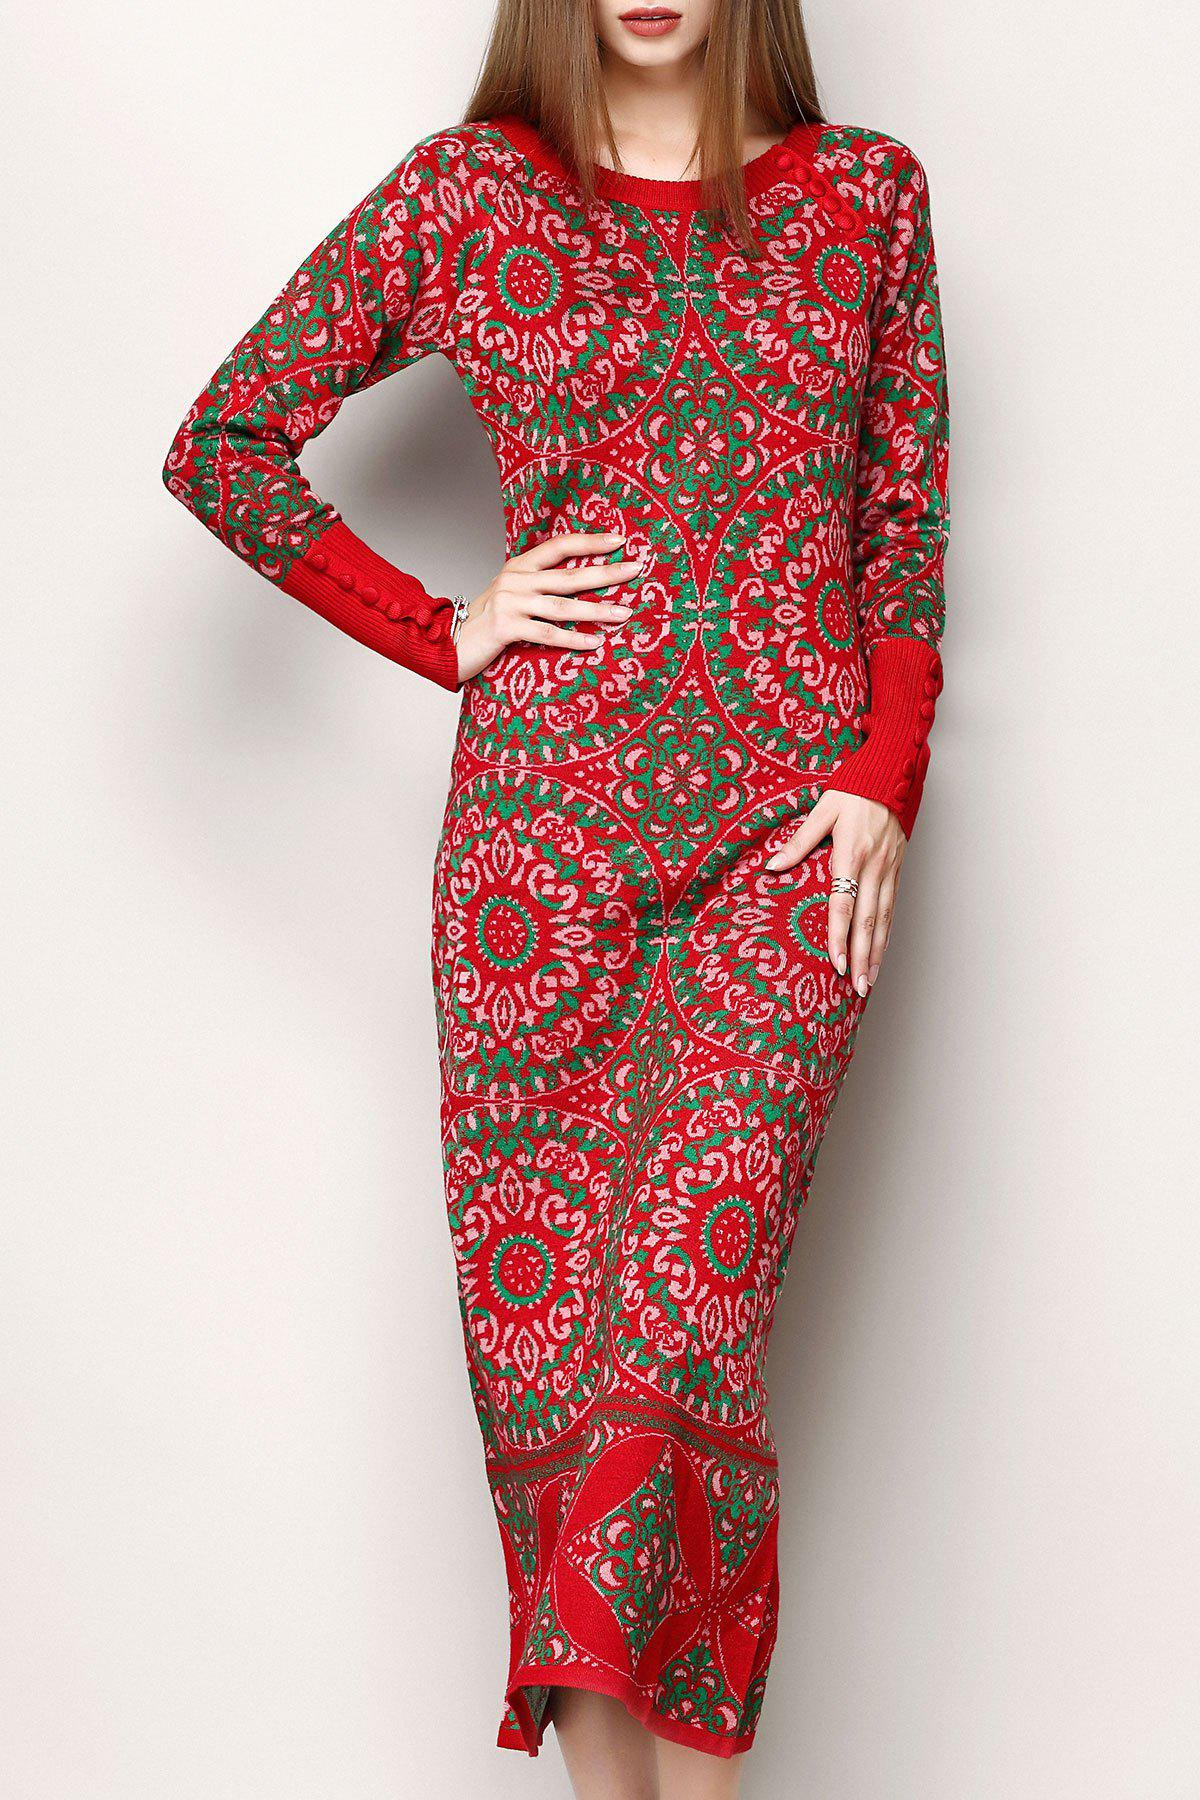 Jacquard Print Ethnic Style Sweater DressWOMEN<br><br>Size: L; Color: RED; Style: Sheath; Occasion: Casual; Material: Acrylic,Wool; Composition: 70%Acrylic,30%Wool; Dresses Length: Ankle-Length; Neckline: Round Collar; Sleeve Length: Long Sleeves; Pattern Type: Print; With Belt: No; Season: Fall; Weight: 0.350kg; Package Contents: 1 x Dress;